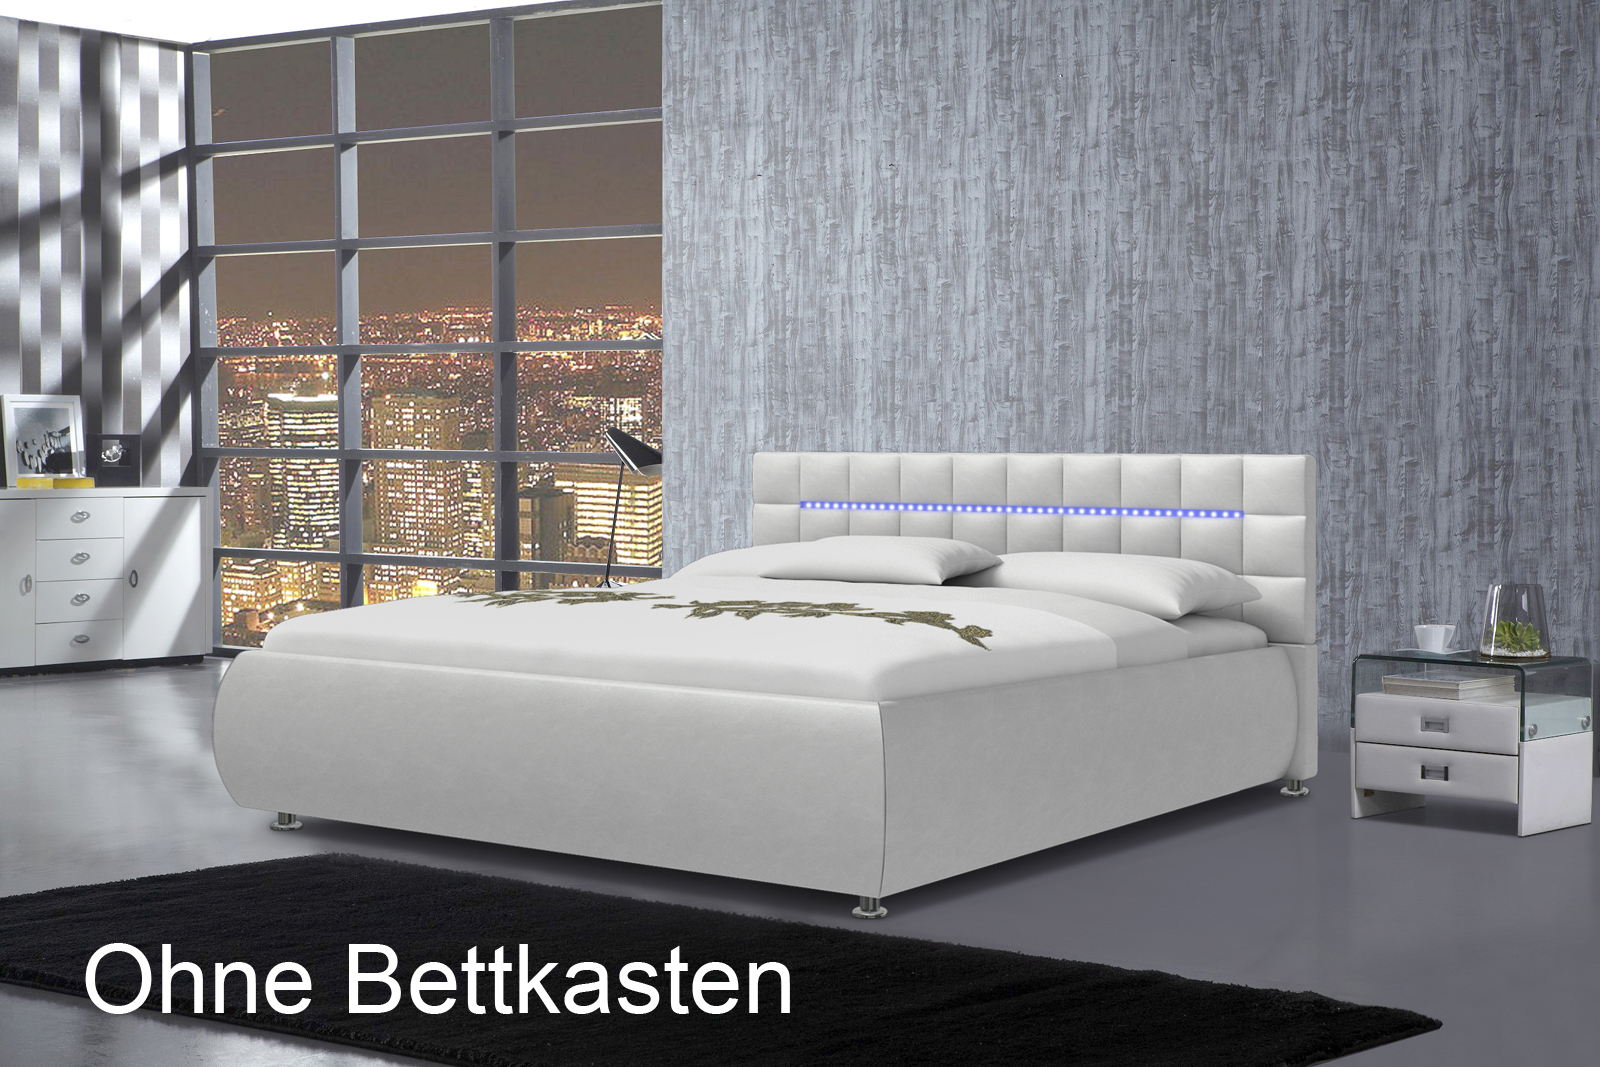 sam polsterbett 140 x 200 cm wei teramo 420 led auf lager. Black Bedroom Furniture Sets. Home Design Ideas